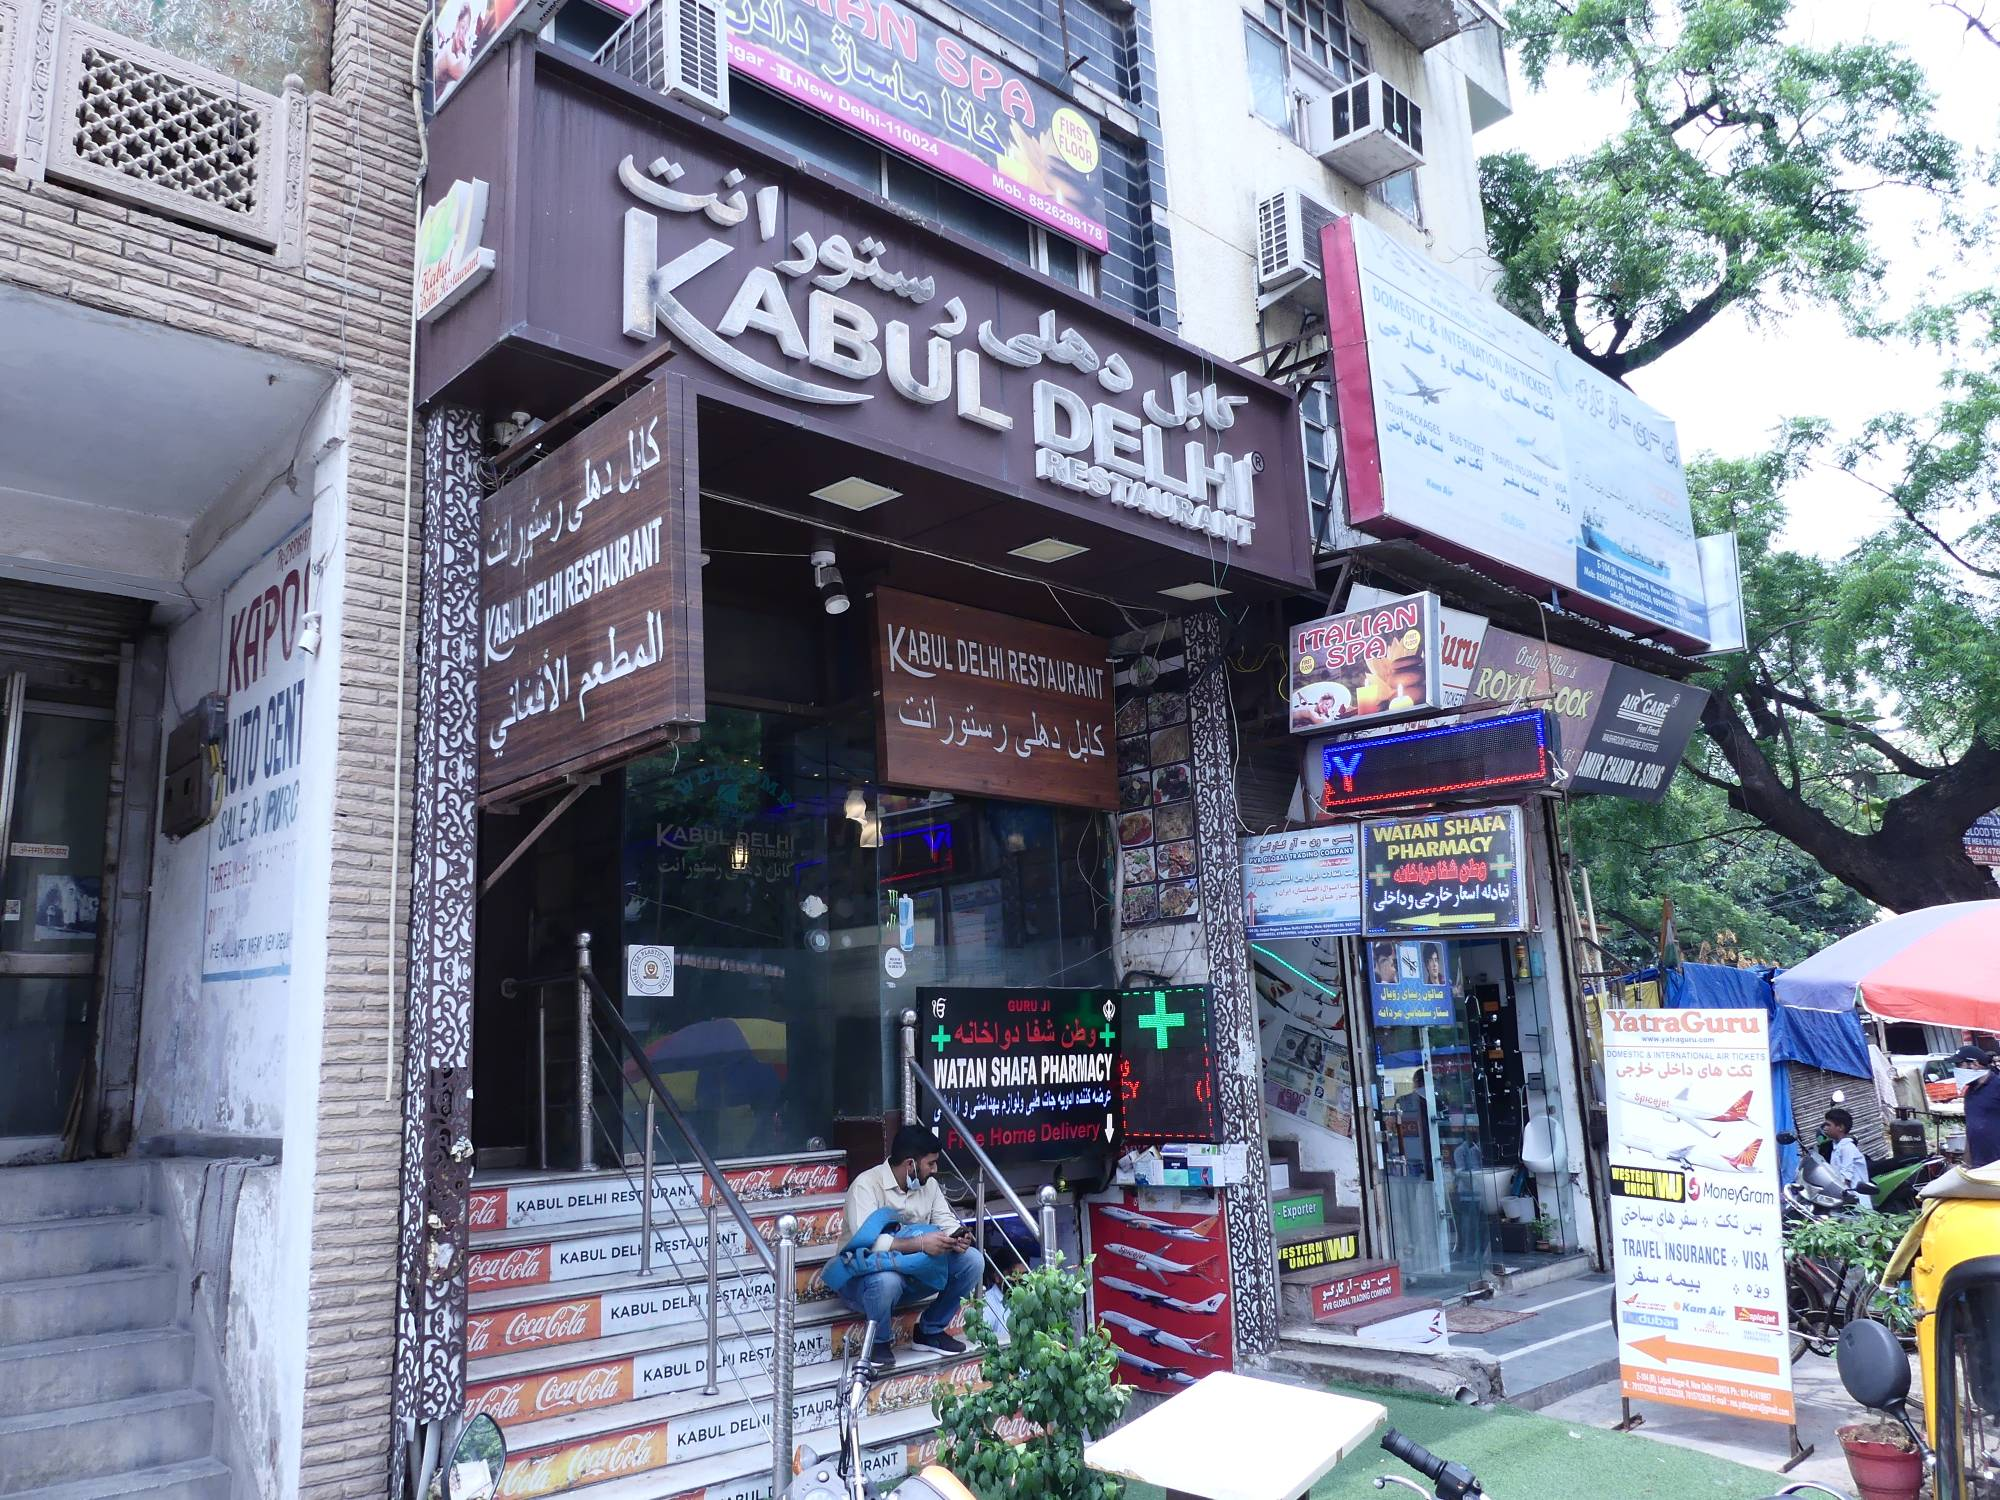 Compared to the rest of the sprawling Indian capital, Little Kabul has a distinct feel, with Afghan people speaking Pashto and wearing traditional Pathani shalwar-kameez mingling with Indians, who come from all over the city for its renowned restaurants. | SHREY DESMOND JOHN